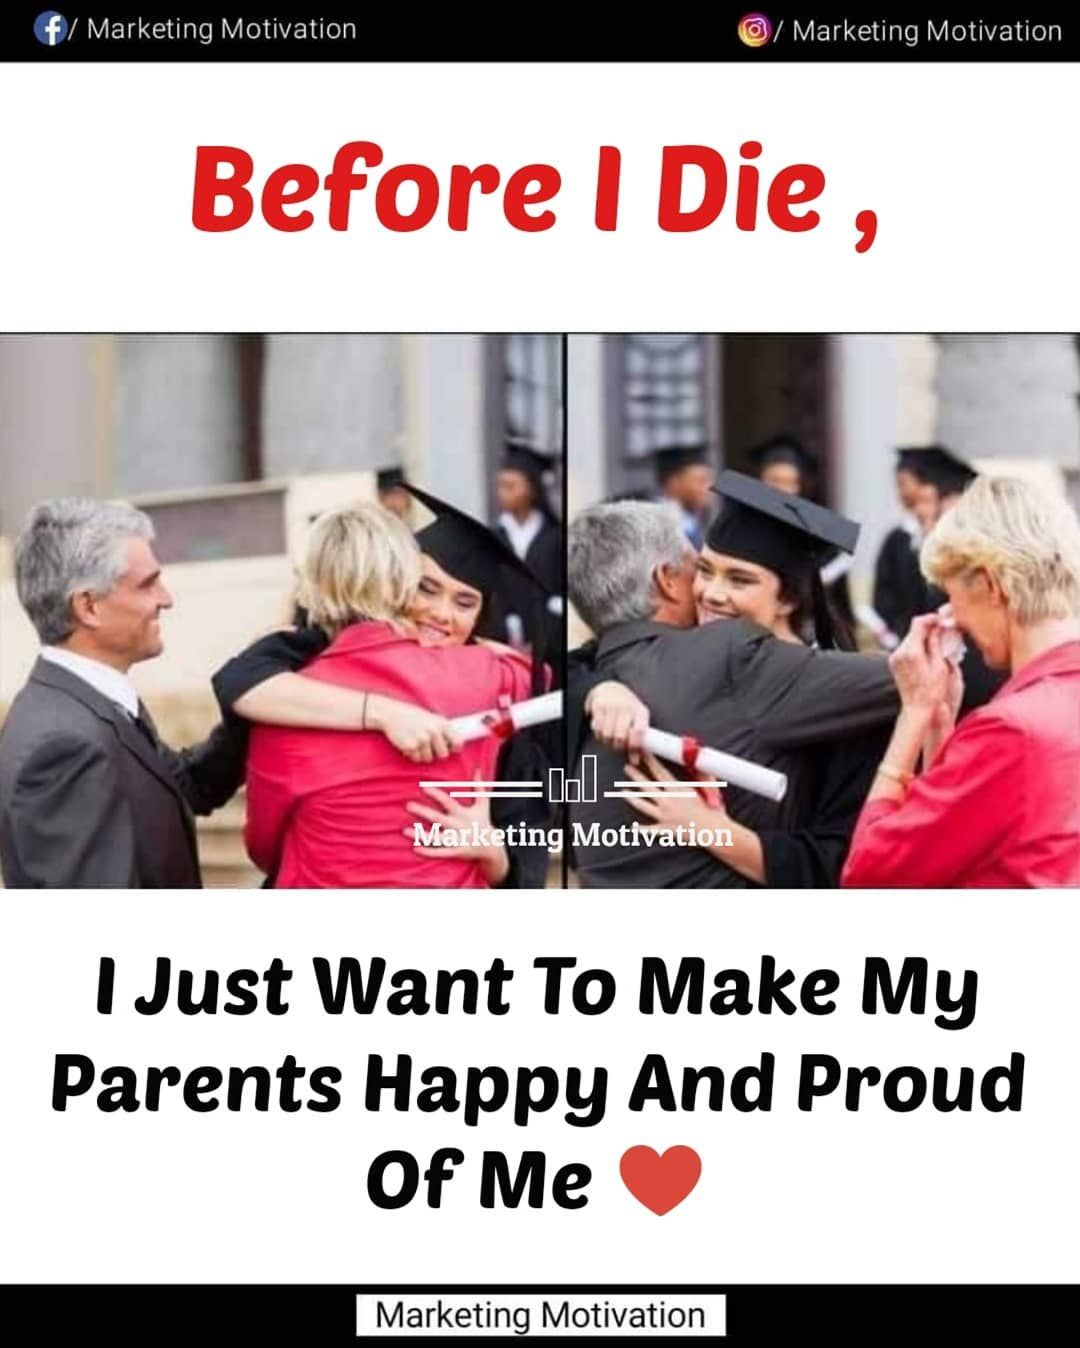 Motivation Inspiration Instadaily Luxurydaily Like Success Millionnaire Work Lifestyle Entrepre Mom And Dad Quotes Love My Parents Quotes Daddy Daughter Quotes